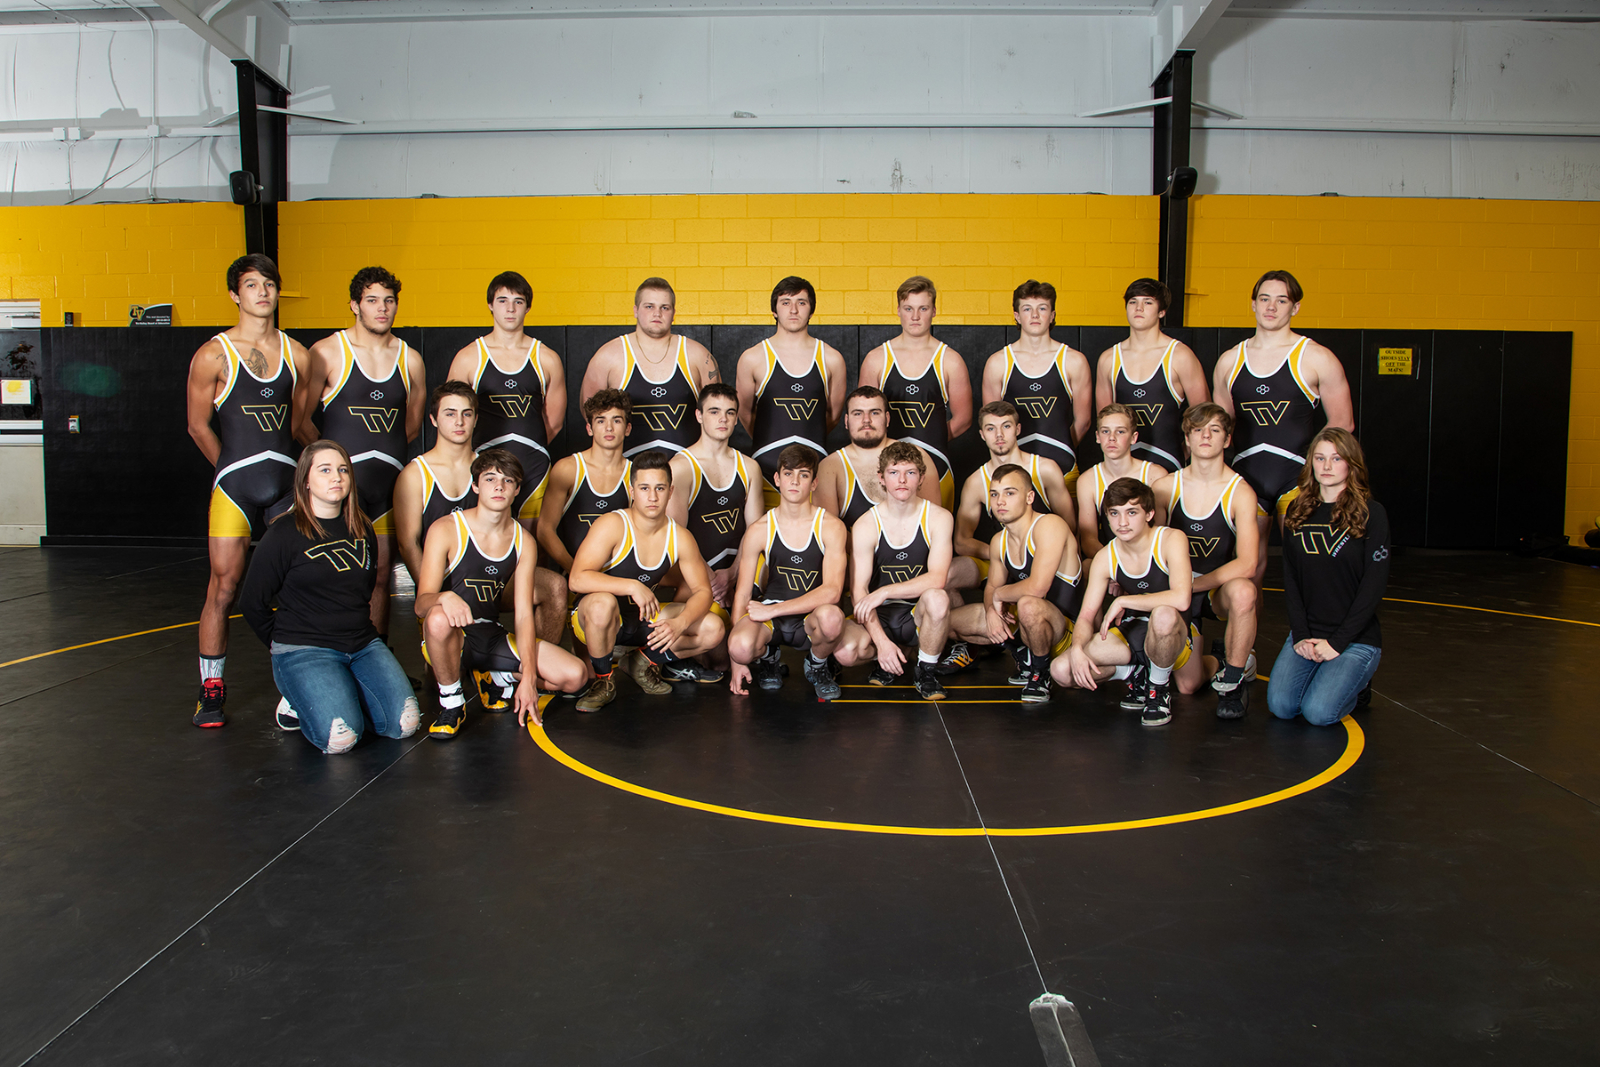 Tri-Valley wrestling hosts annual Big Dawg Invitational Saturday, Dec. 15 at TVHS; 24 teams to utilize both gyms at TV; doors open at 9:00 am